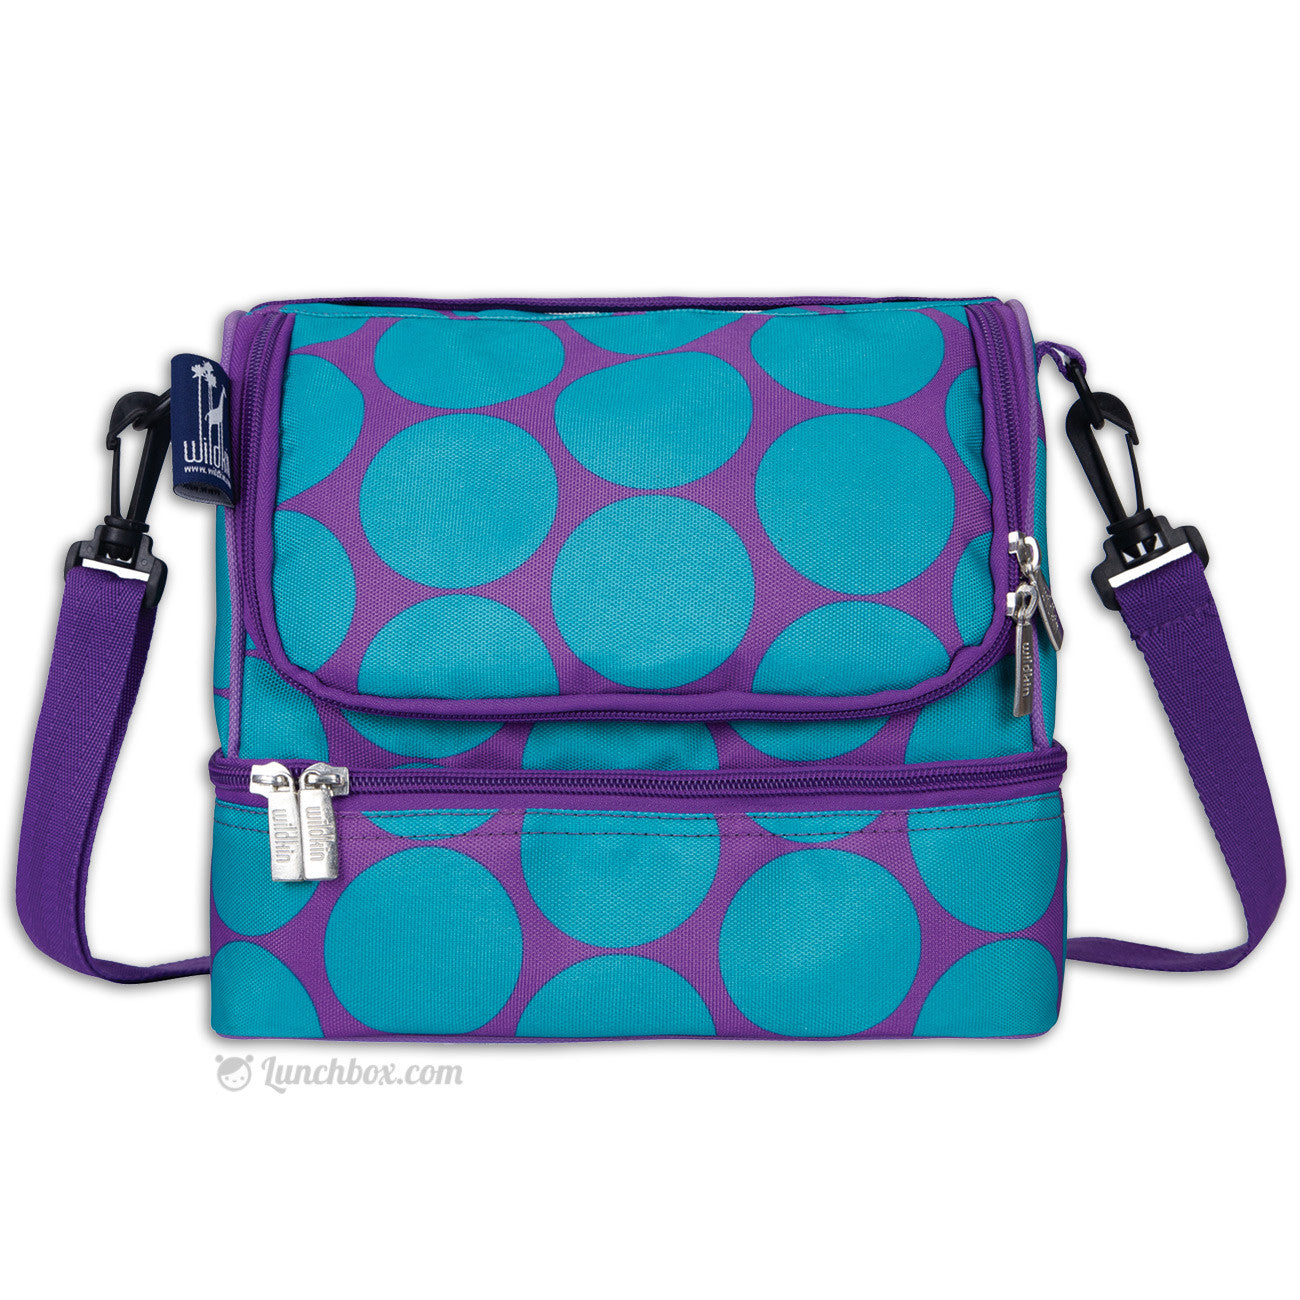 Double Decker Lunch Box - Big Dots Aqua